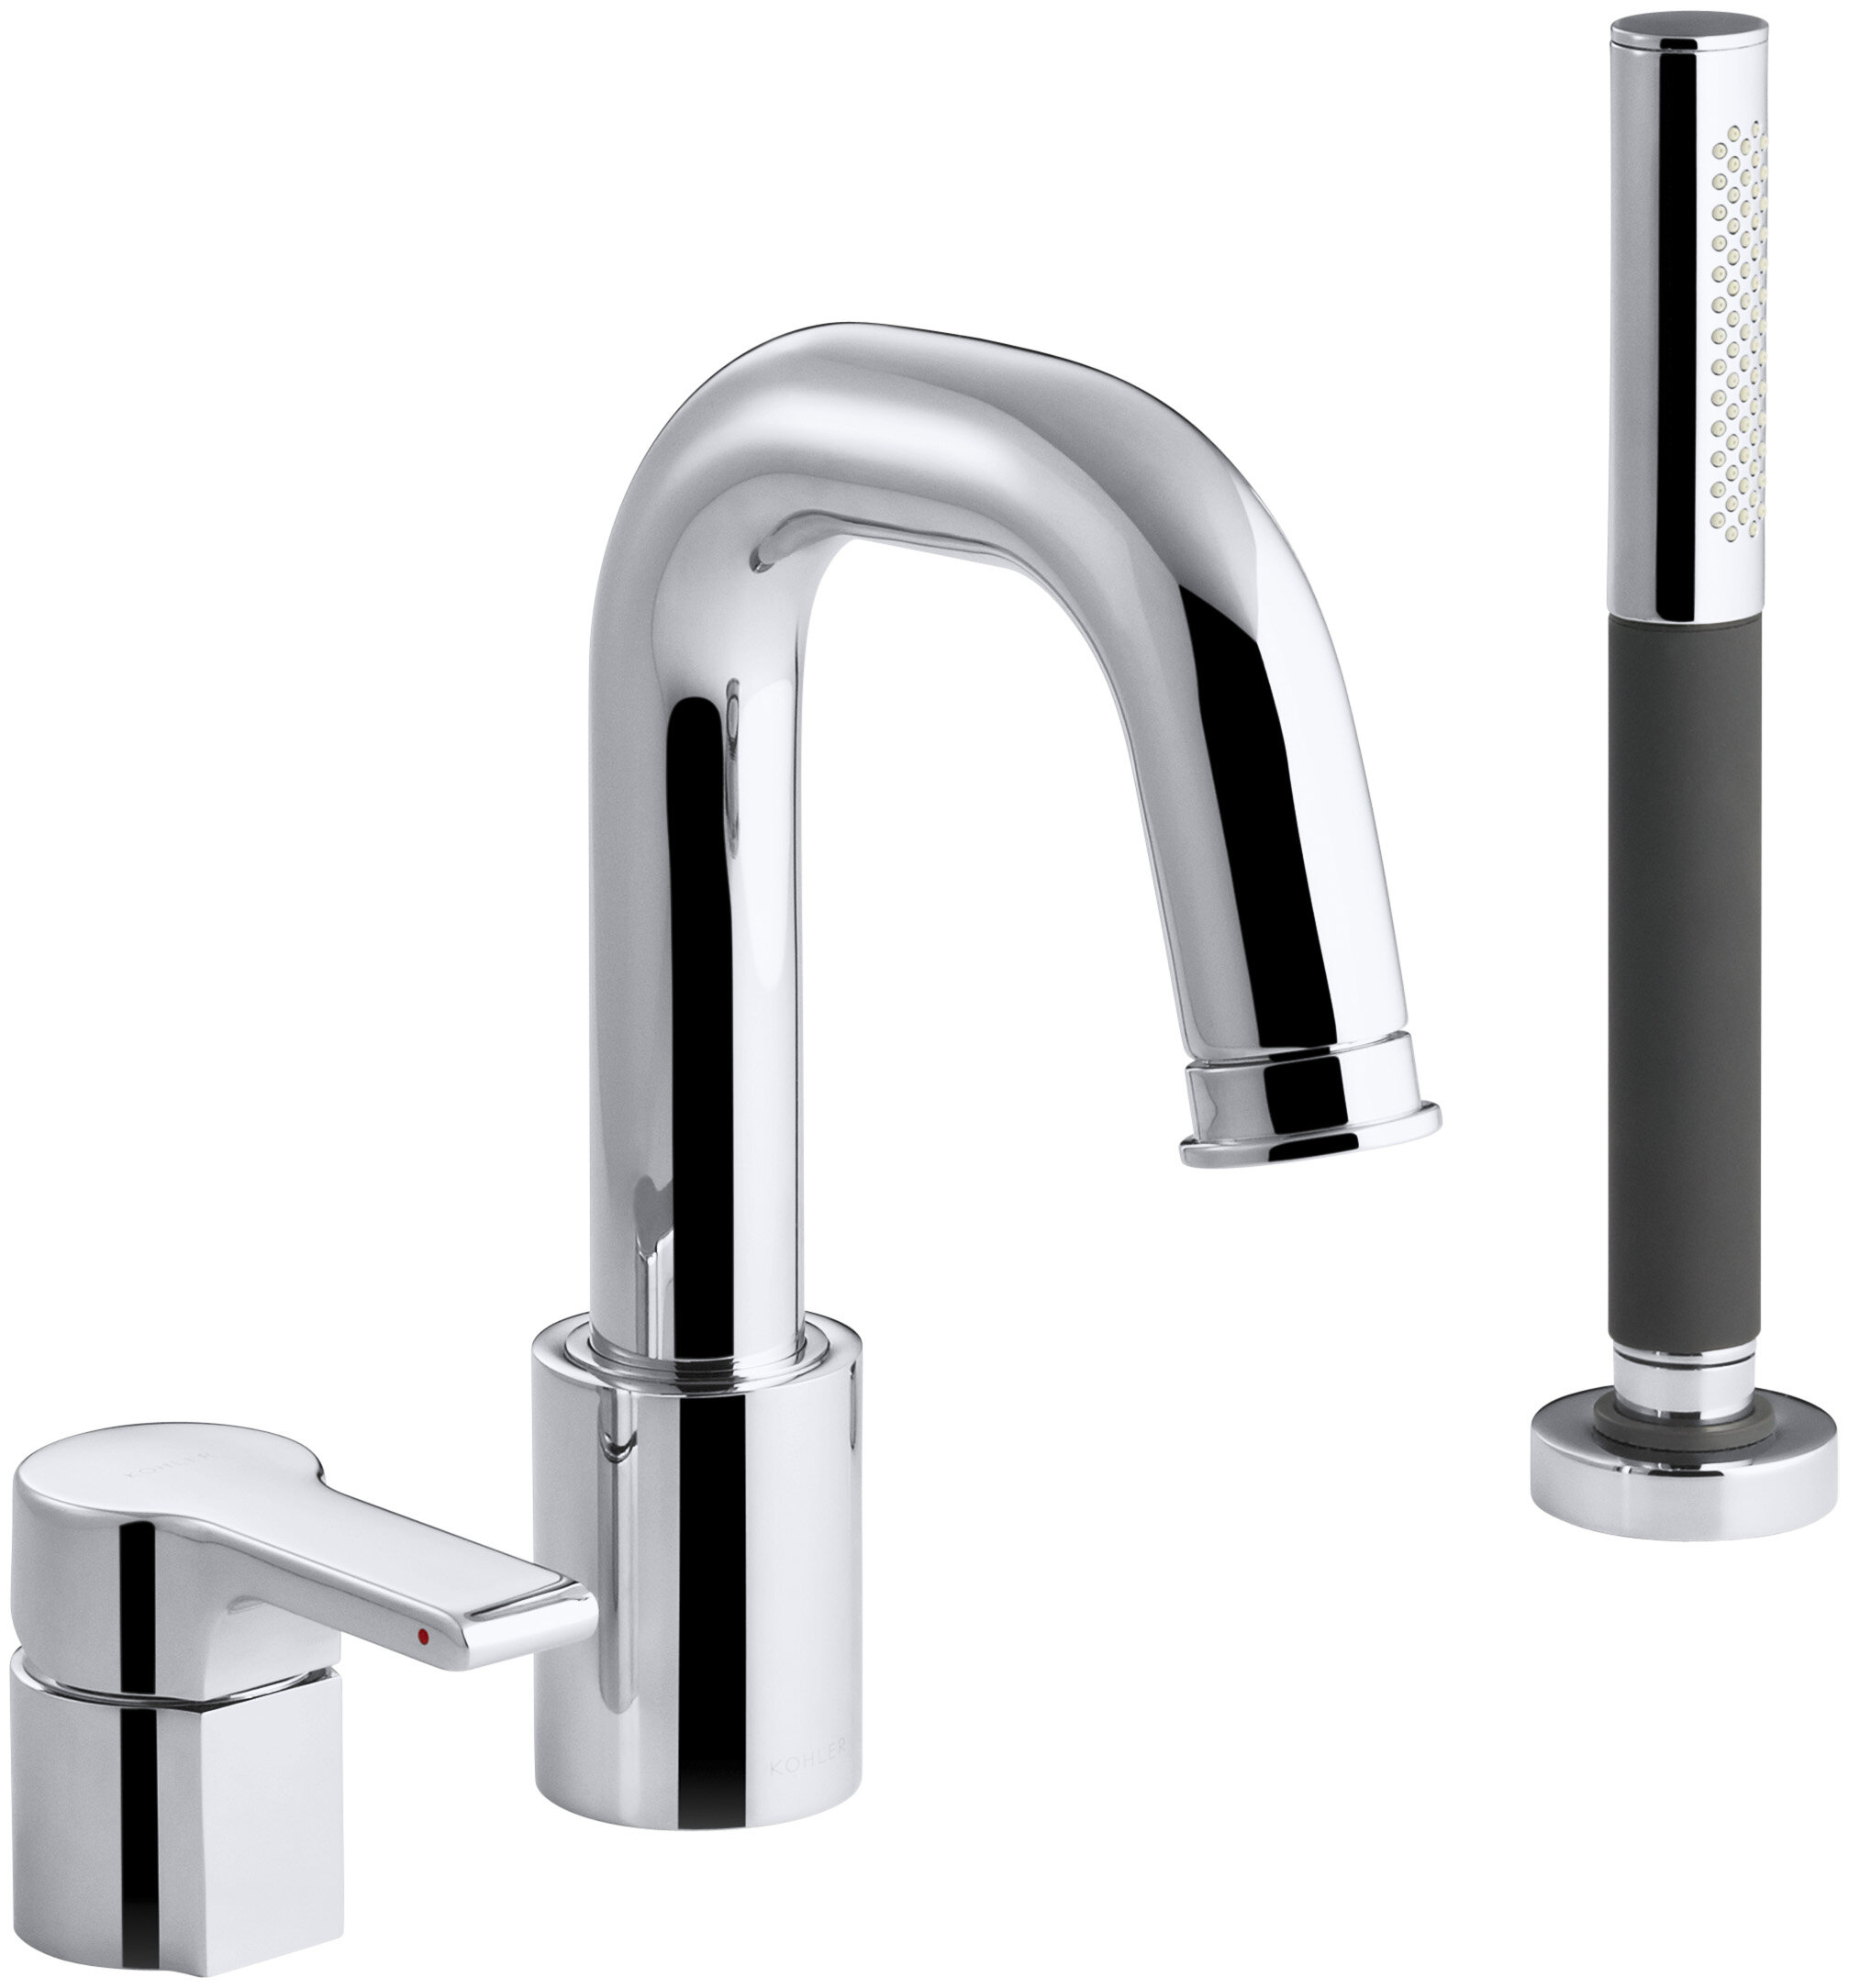 shower patience fillers mount hand faucet american deck with filler tub standard floor bathroom mounted